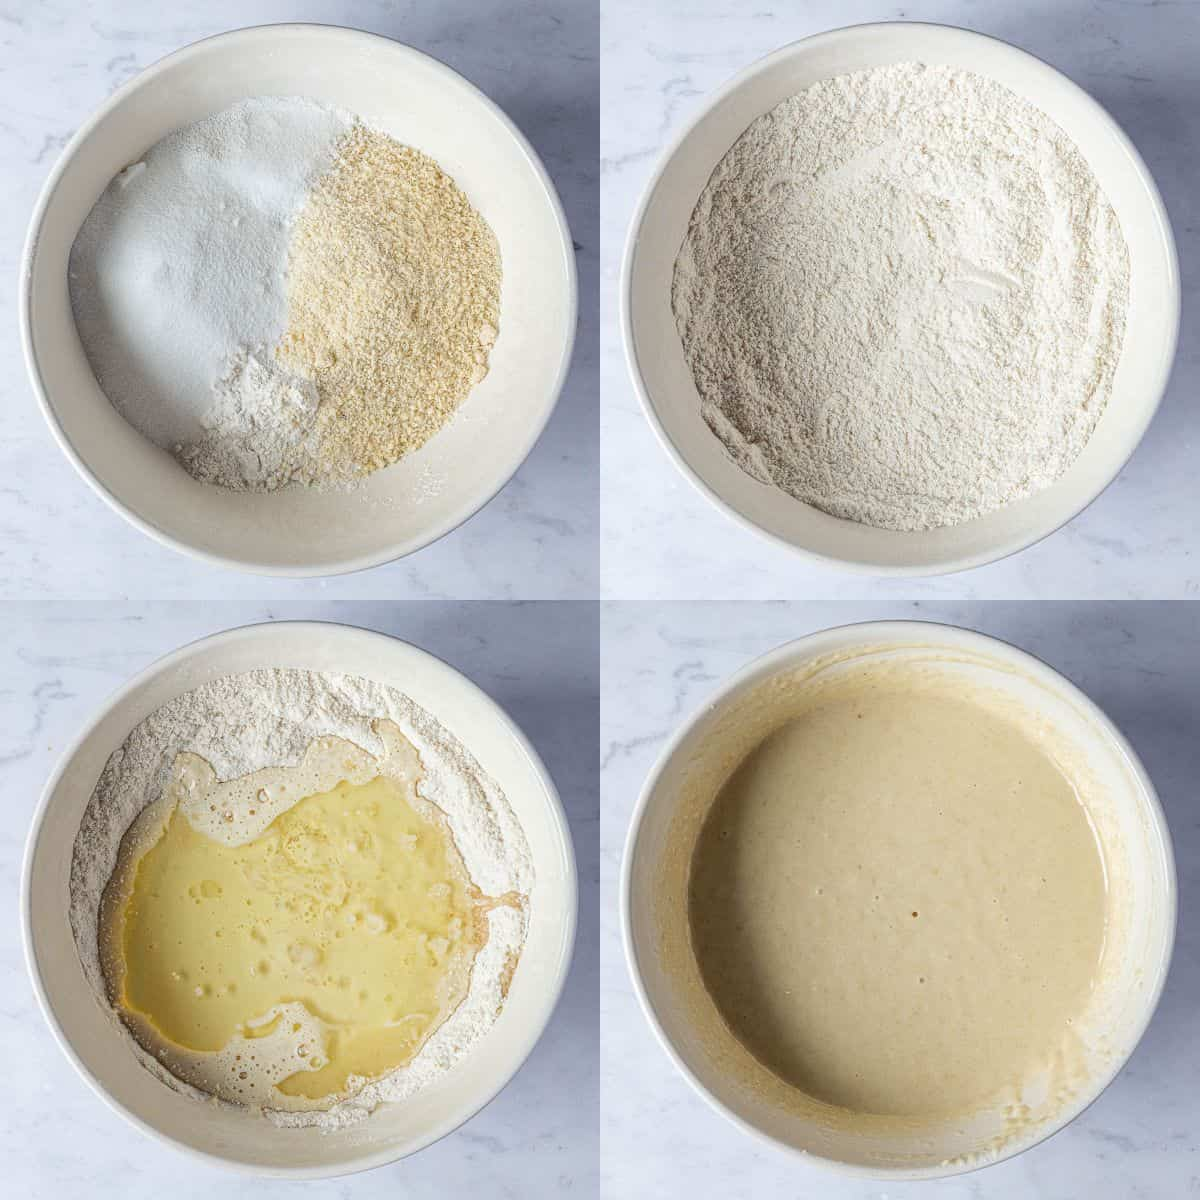 Step 1, a four image collage of making the cake batter.